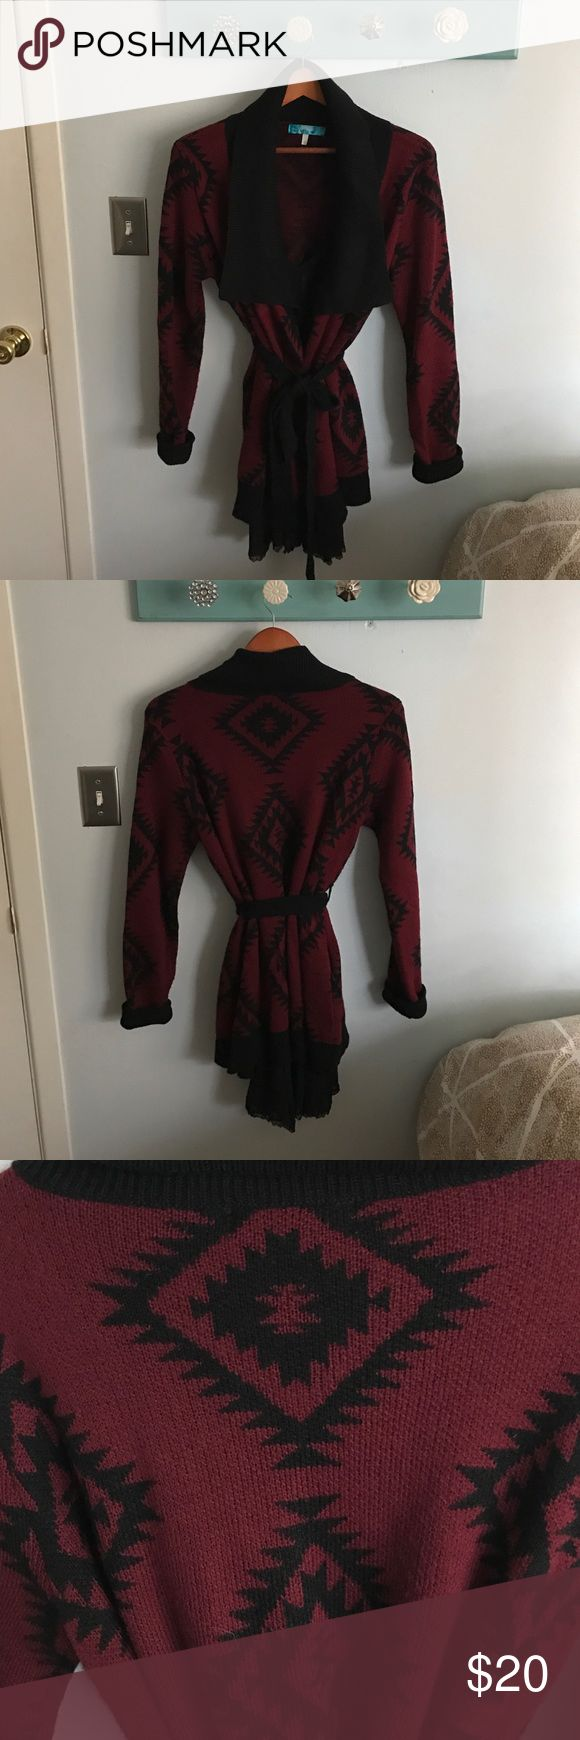 Francesca's Collections tribal sweater Great condition tribal print black and maroon sweater, has sash tie and POCKETS, made by Buttons Francesca's Collections Sweaters Shrugs & Ponchos